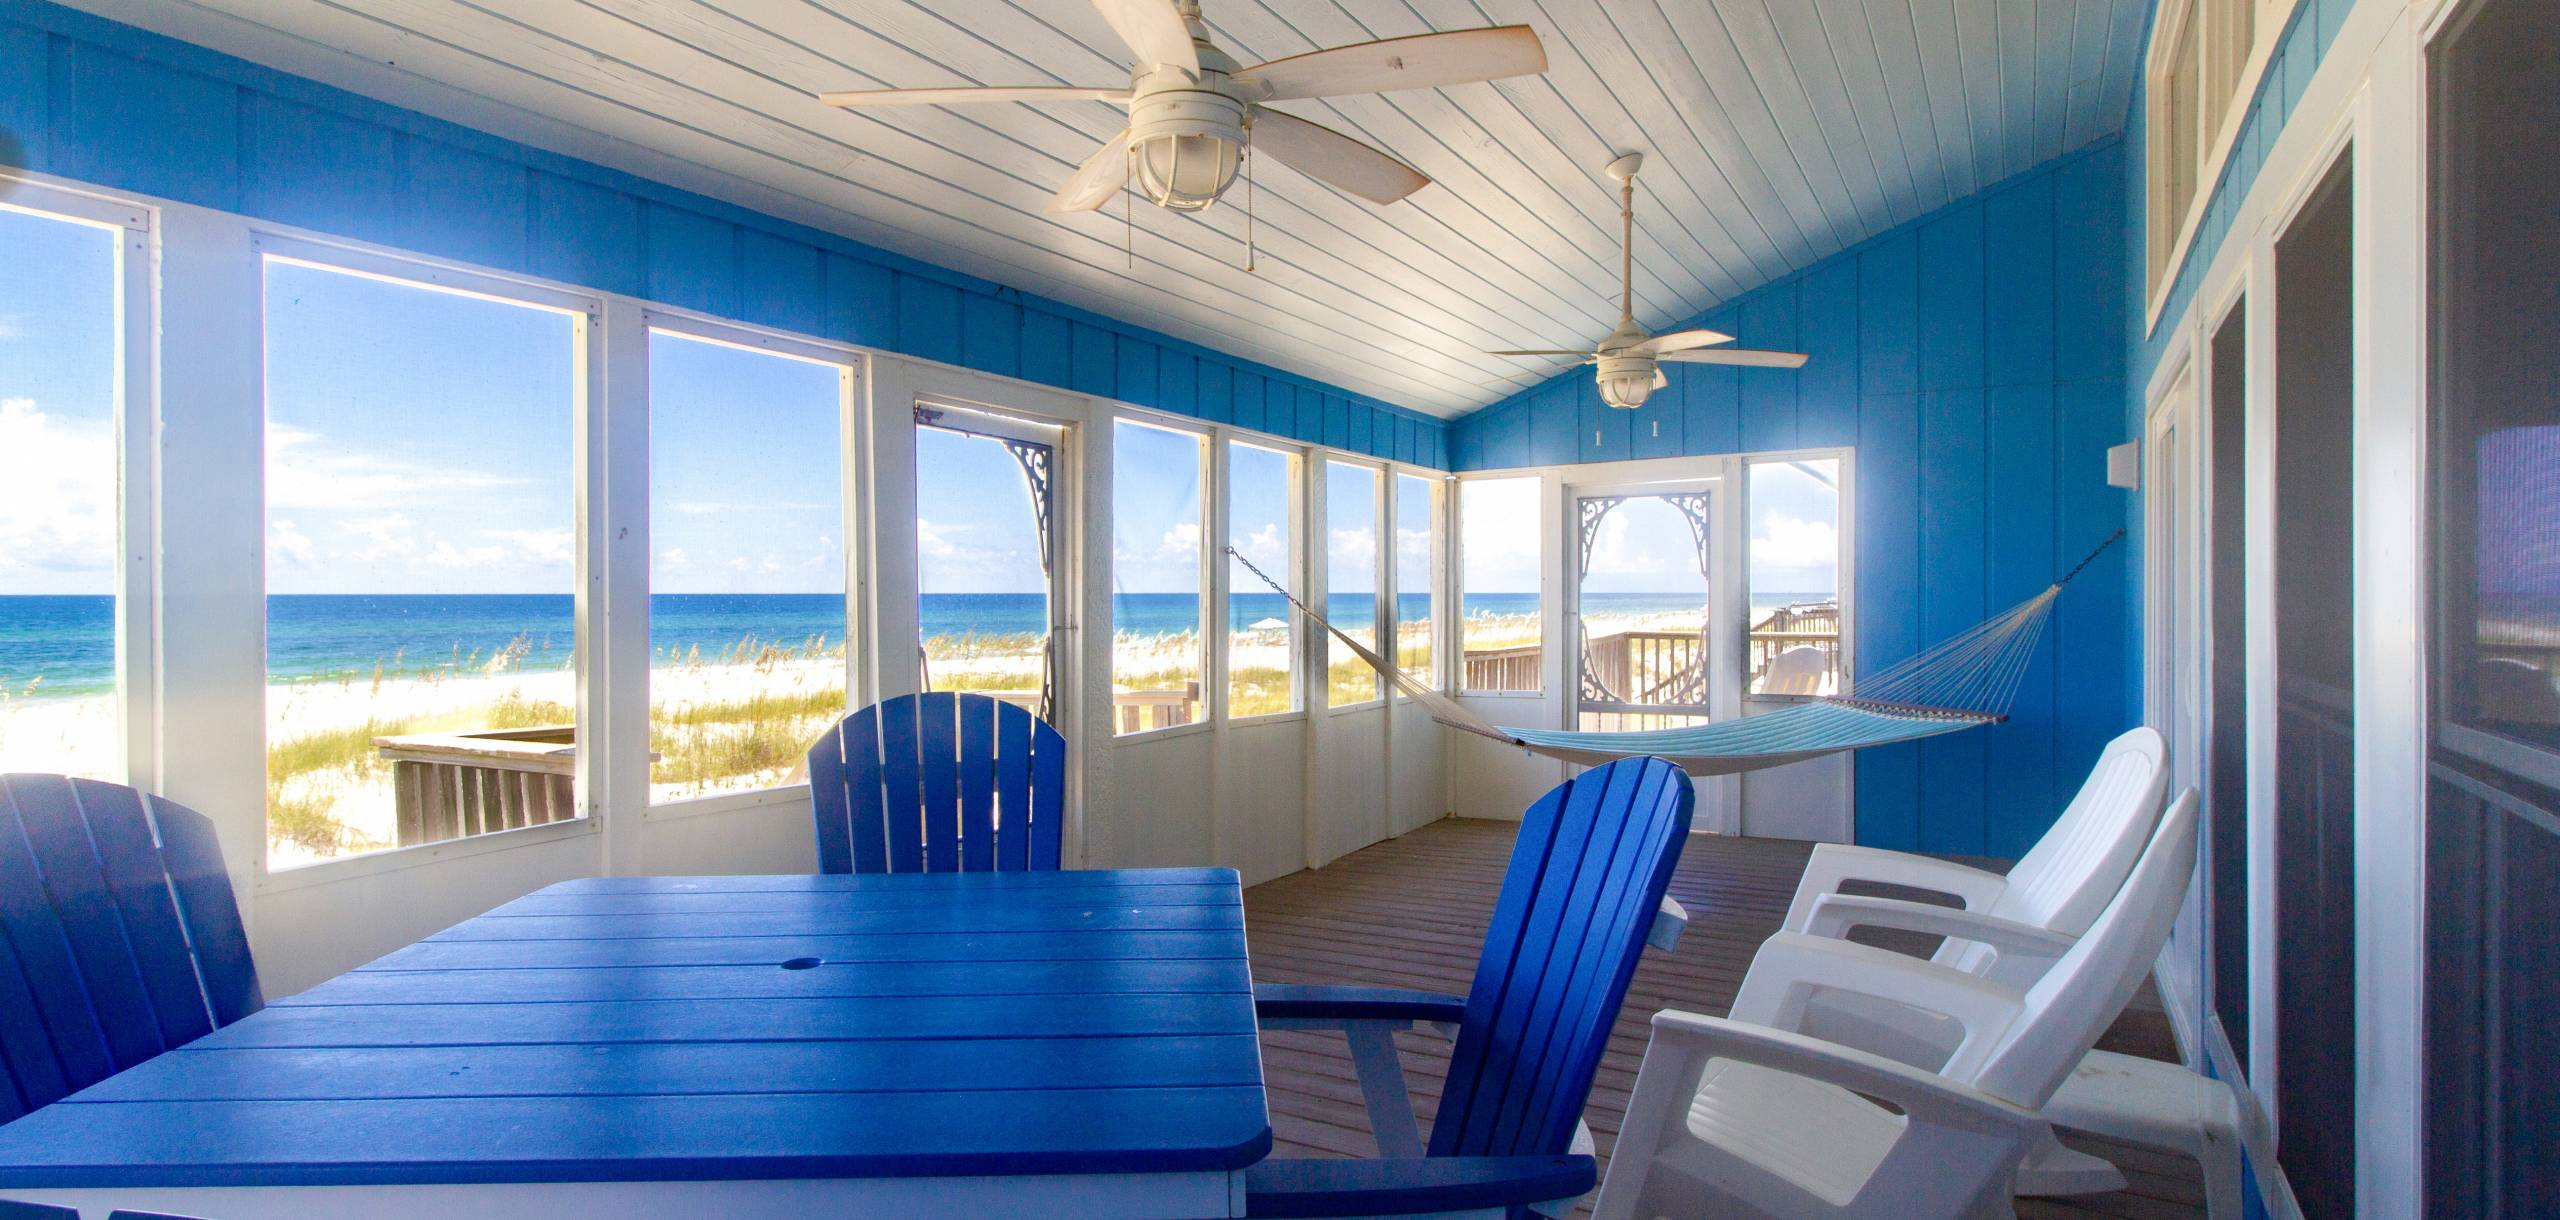 The view from the Beach facing porch at Change of Pace, a beautiful 6 bedroom gulf front home in Gulf Shores Alabama